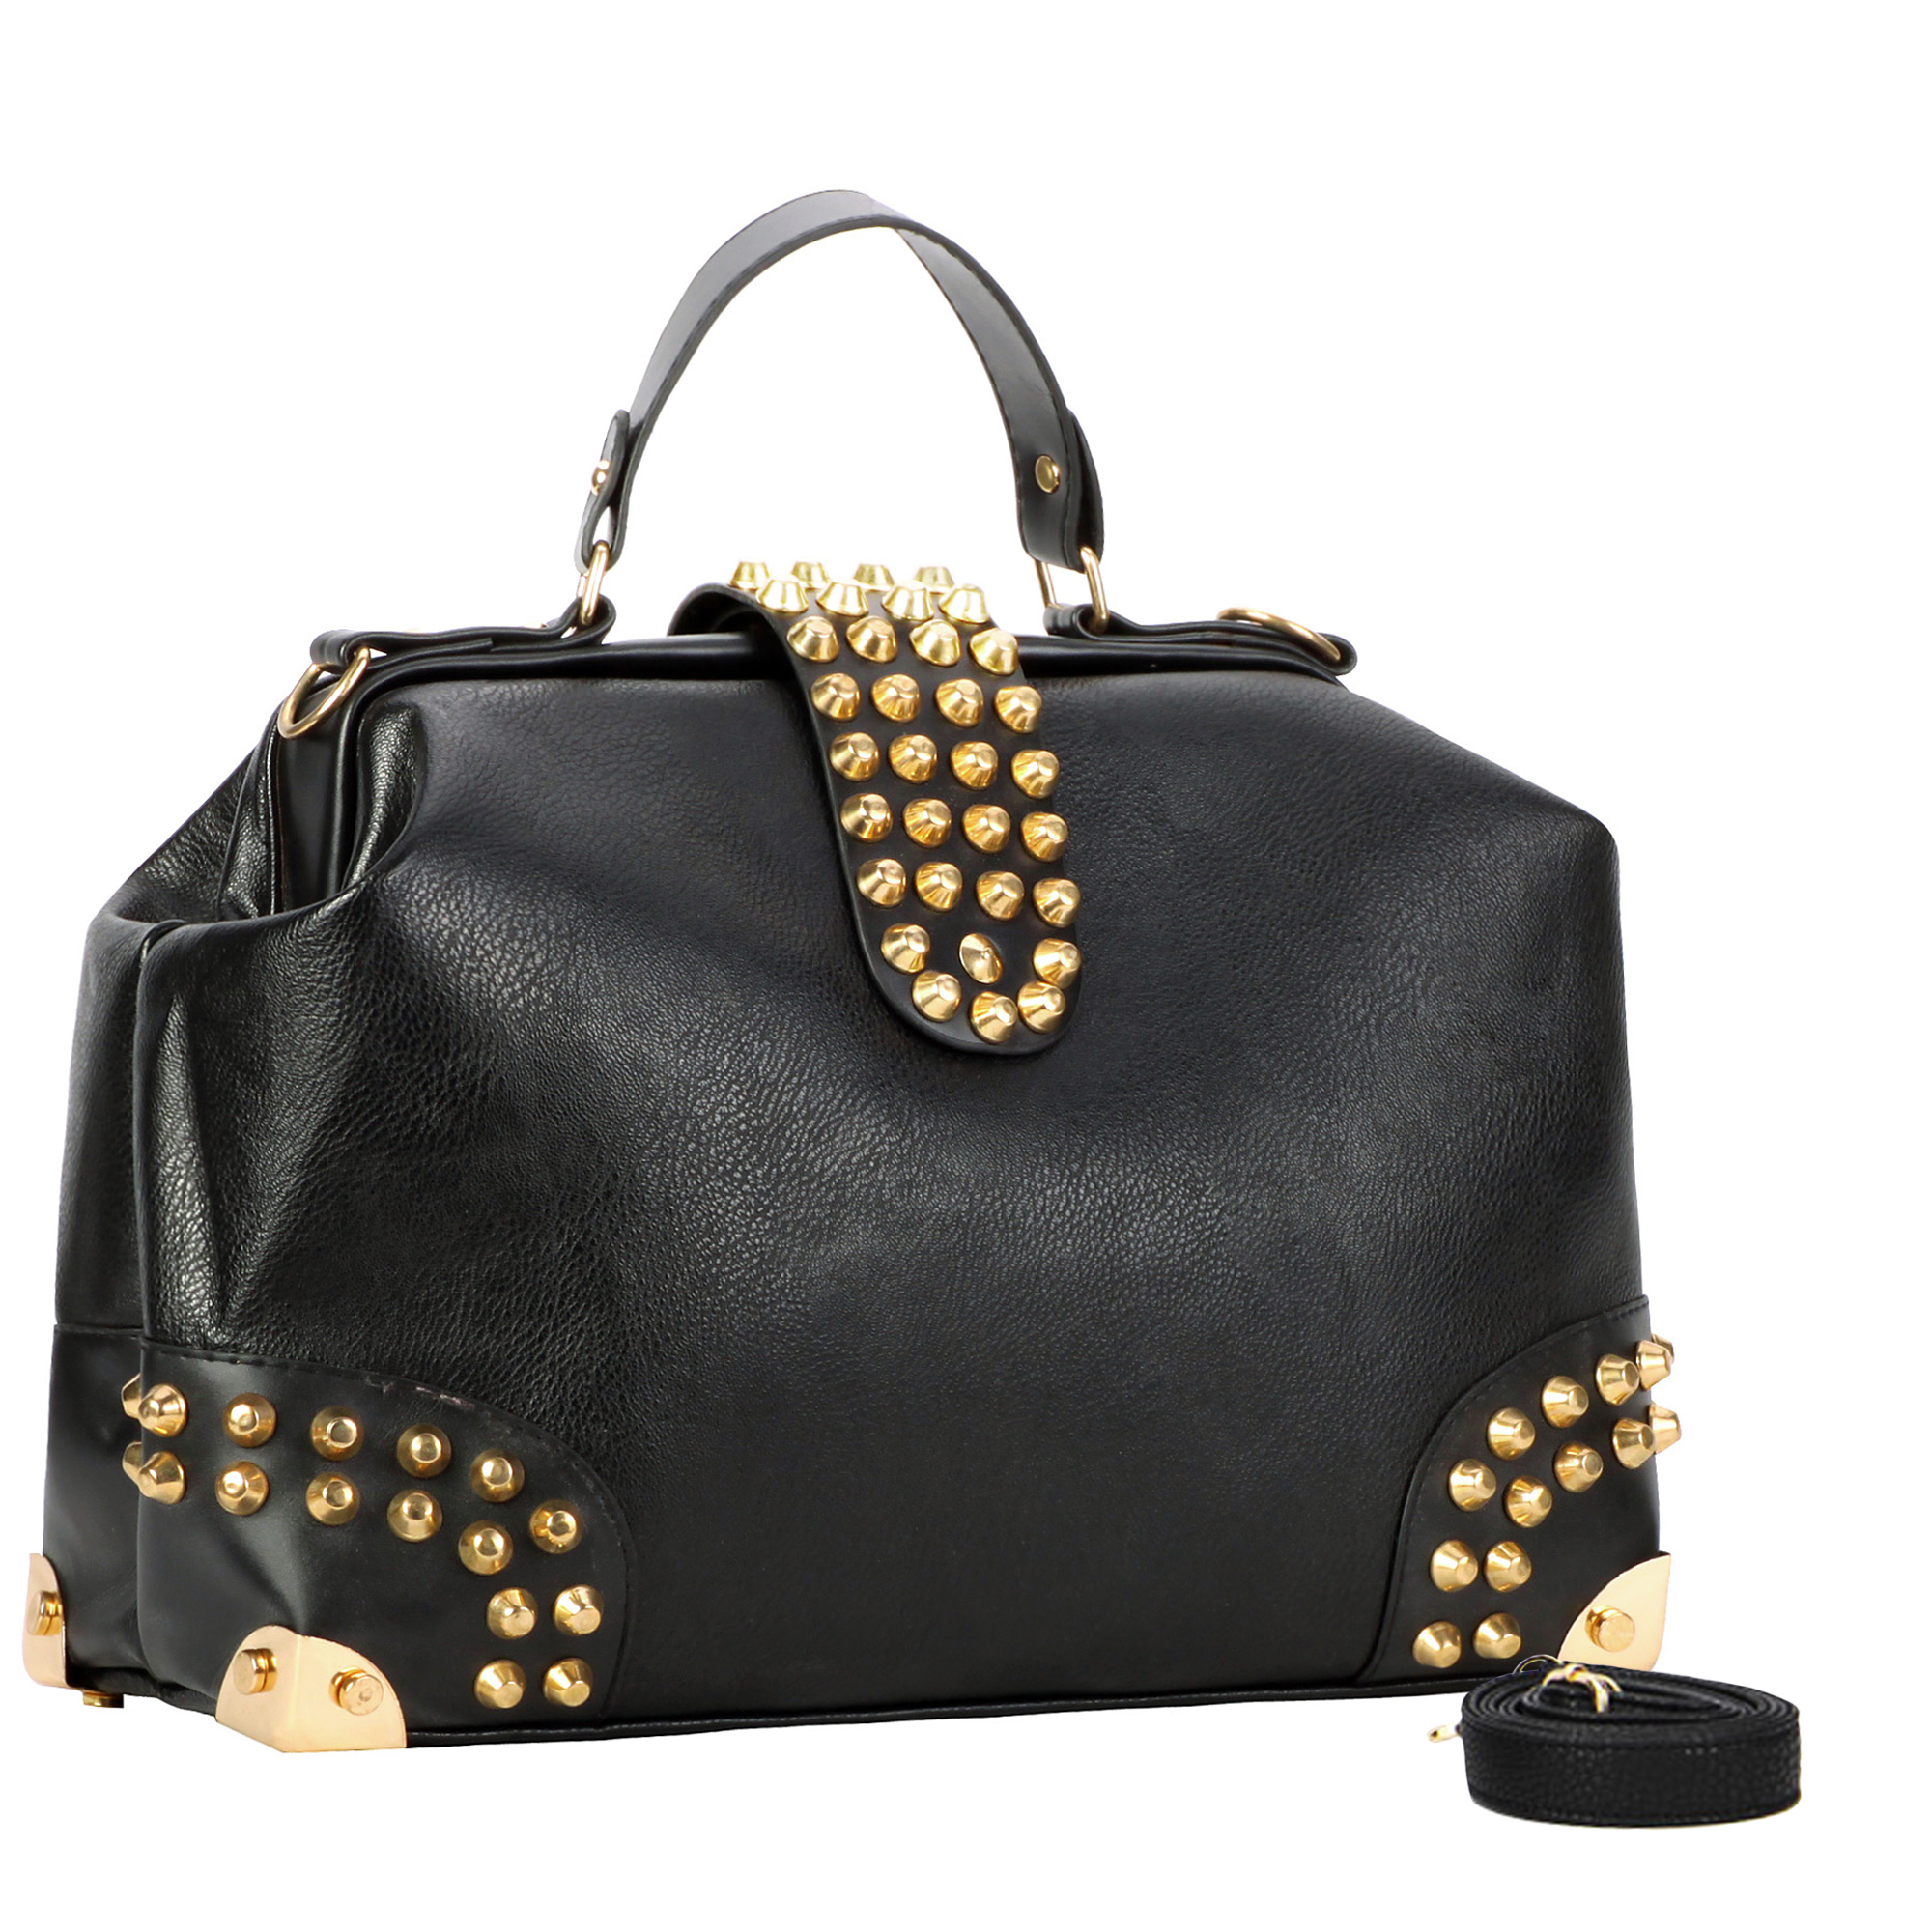 DARKO Black Gothic Gold Studded Doctor Style Office Tote Purse main